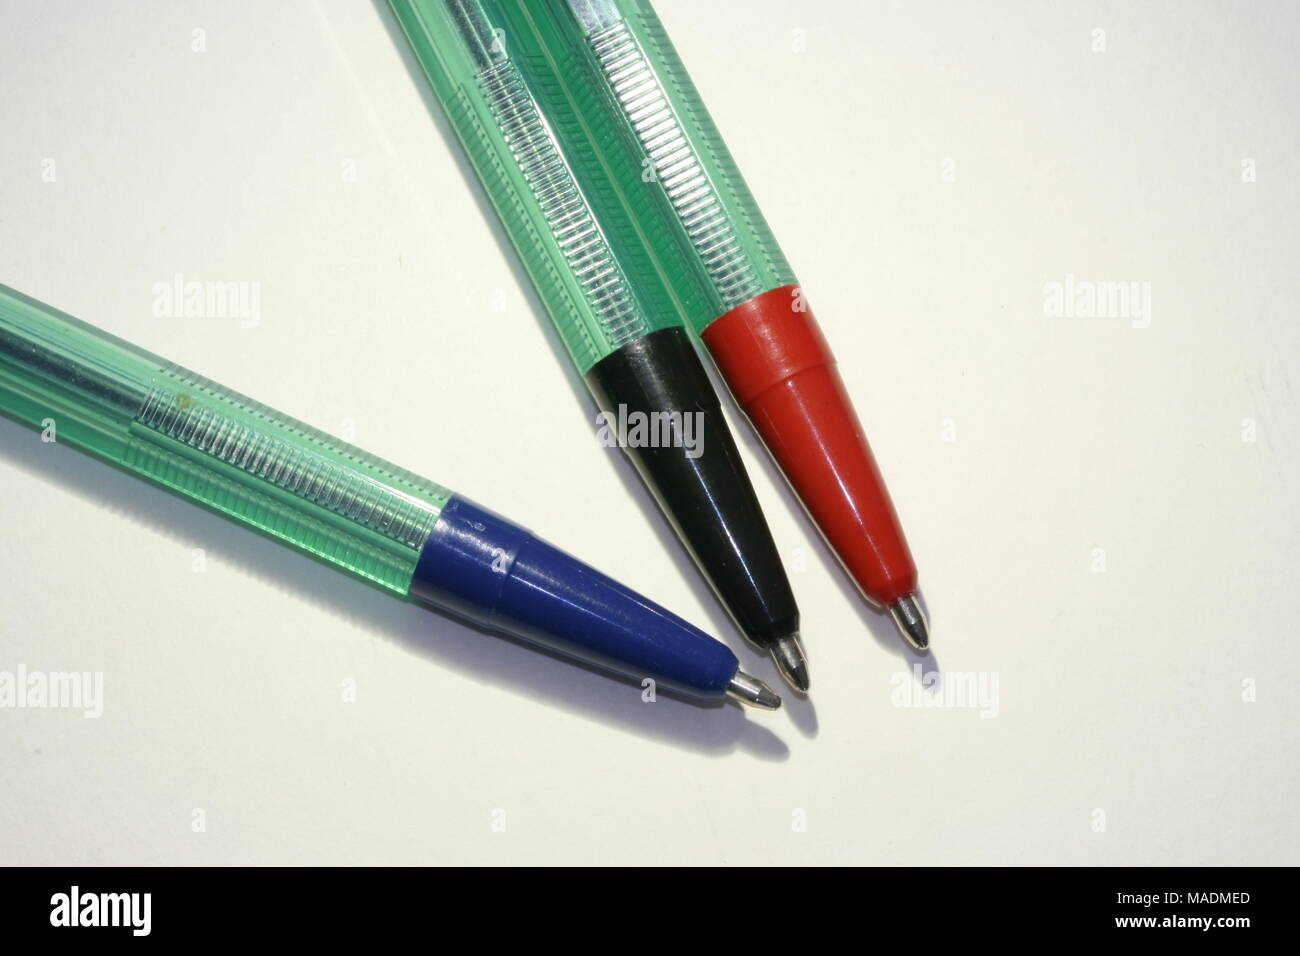 Coloured Ball Point Pen - Stock Image